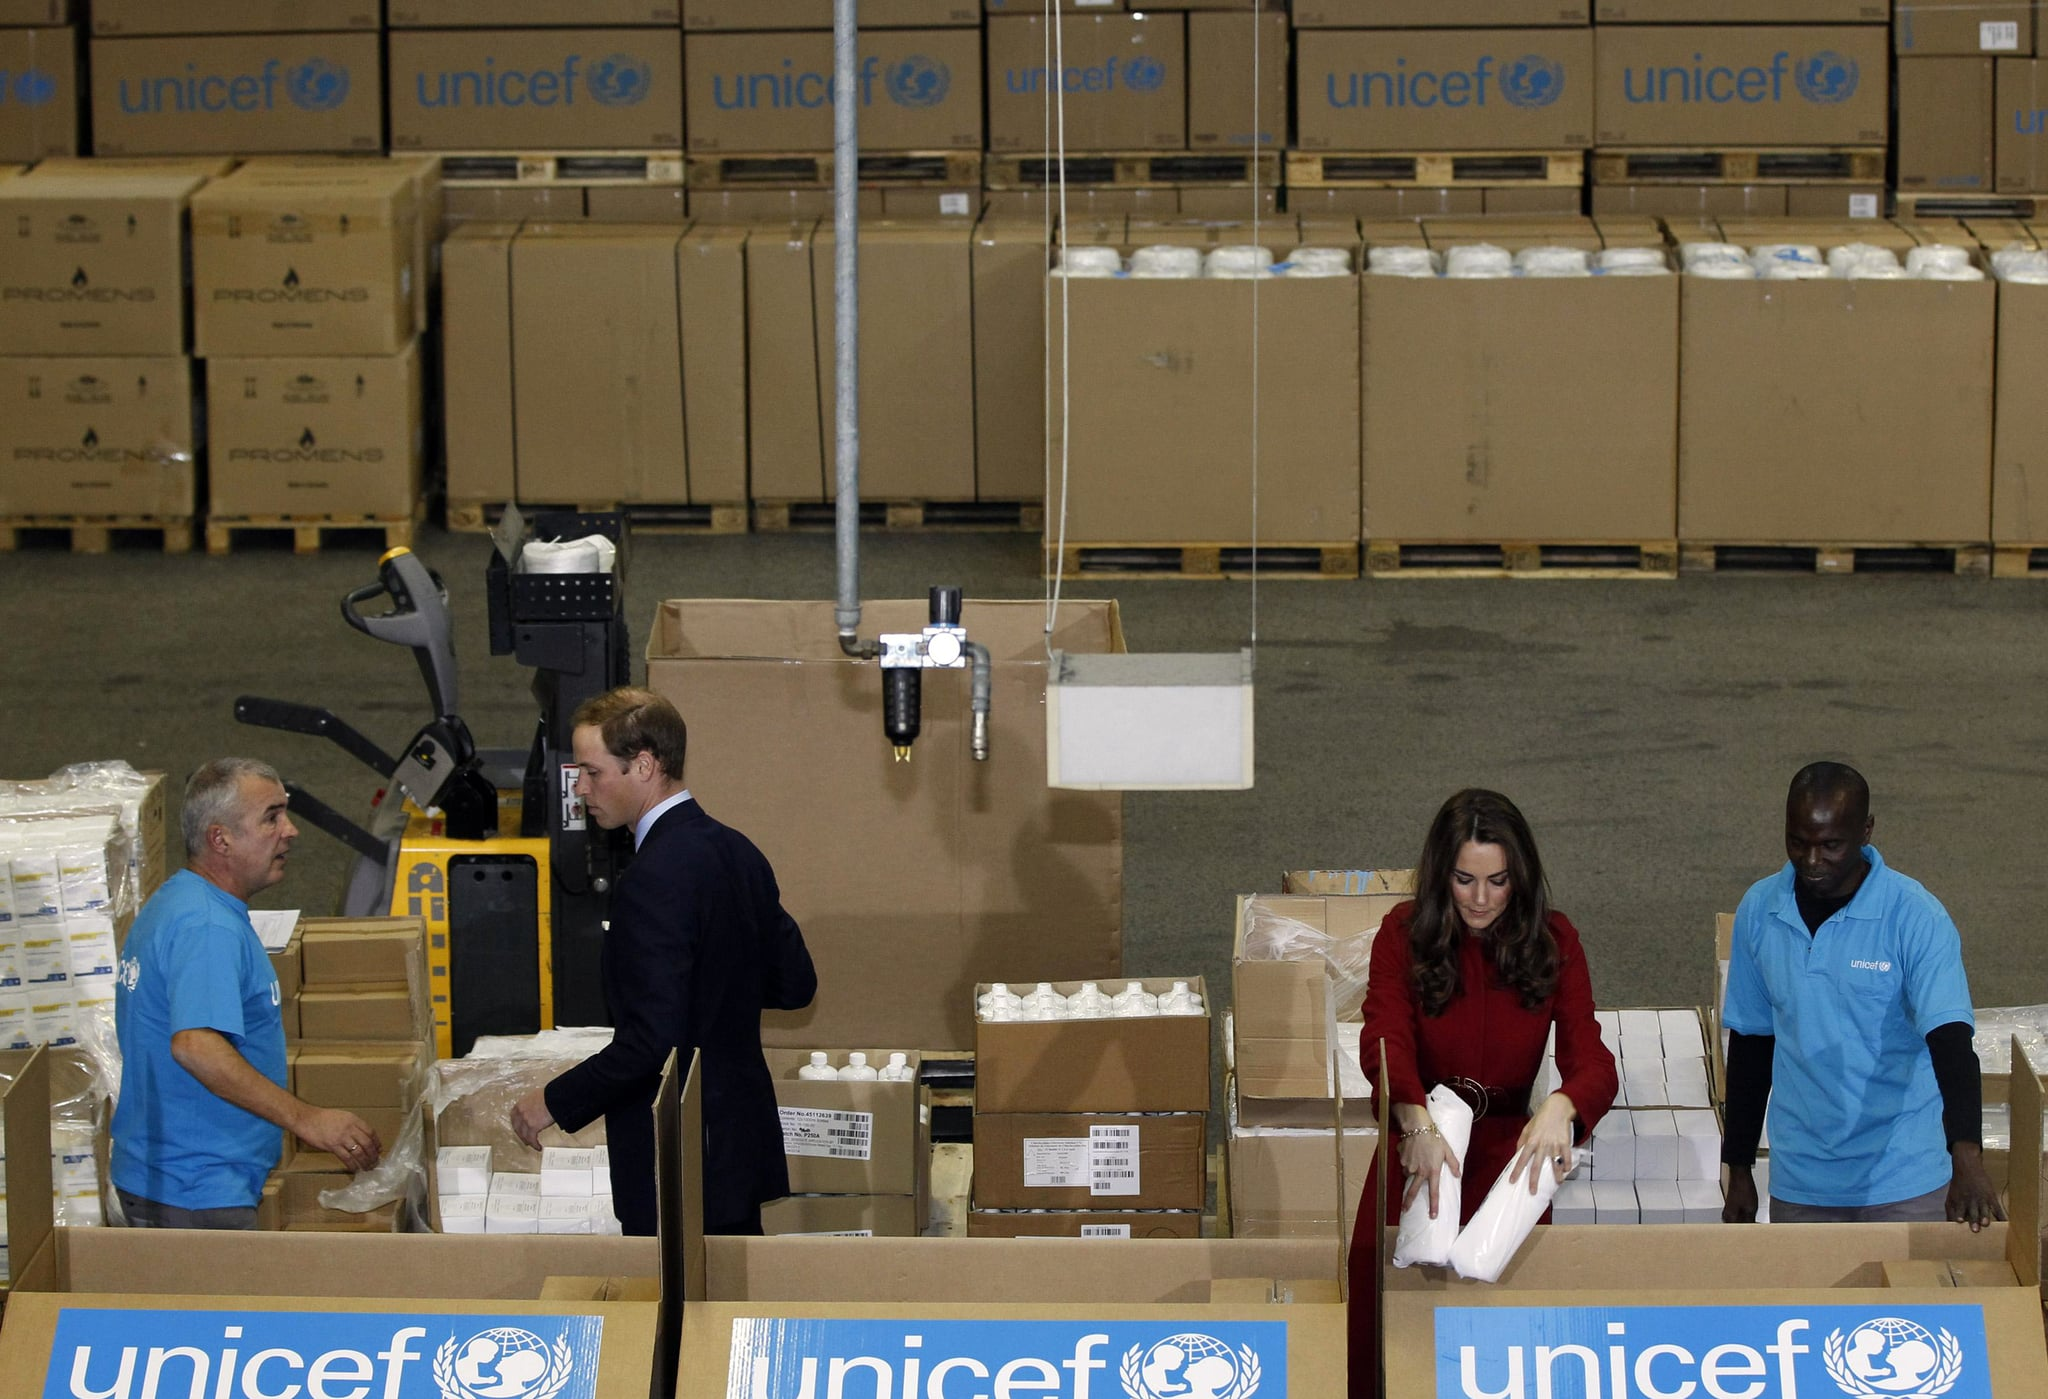 Kate Middleton and Prince William paid a visit to a UNICEF center in Copenhagen.